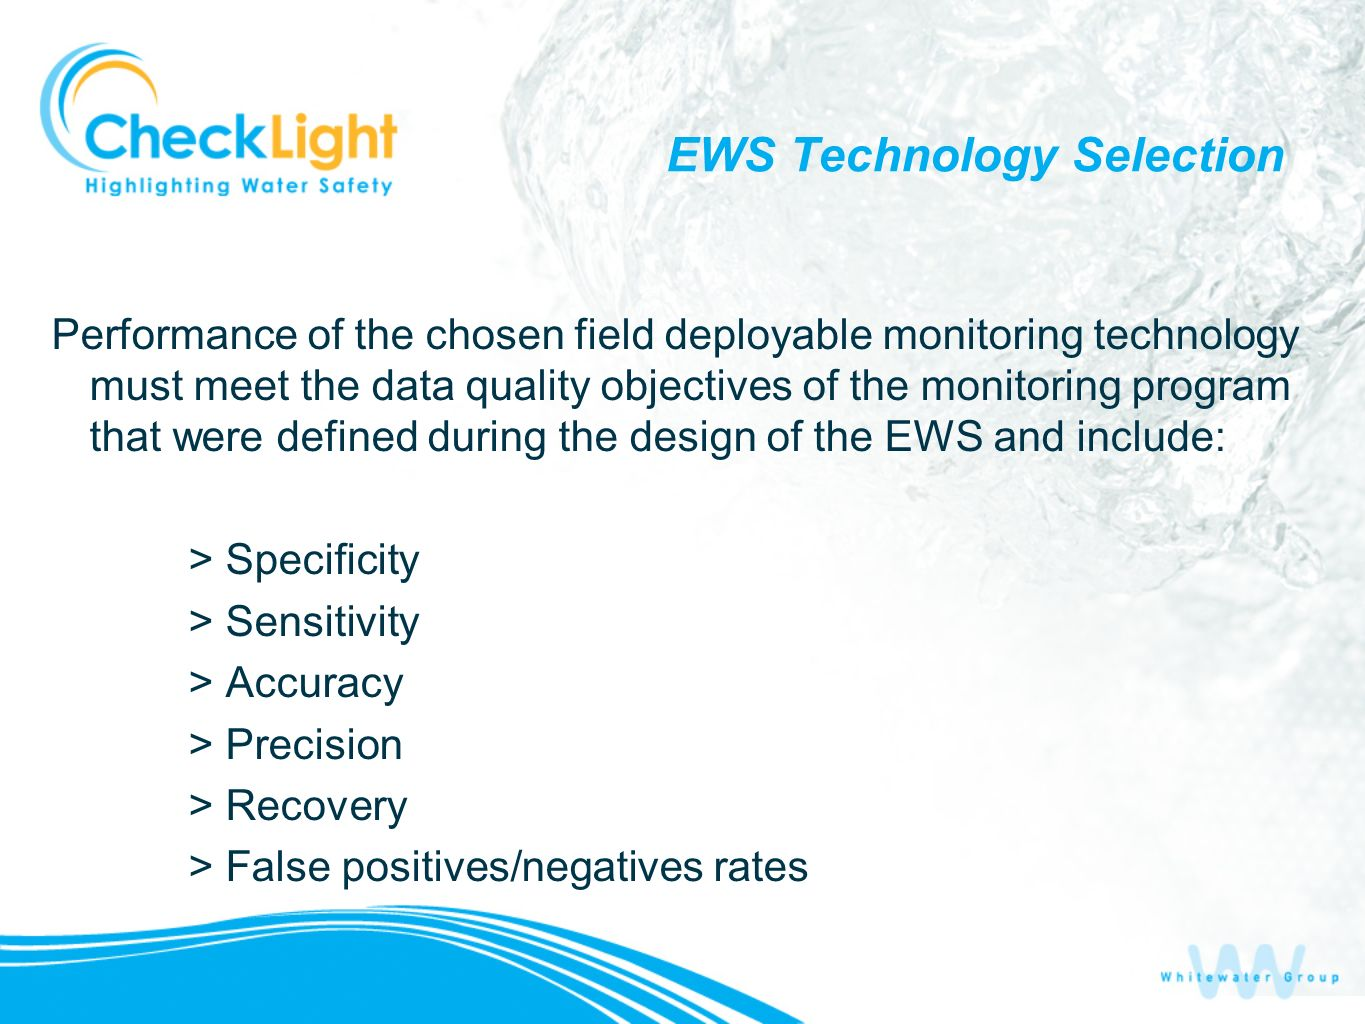 EWS Technology Selection Performance of the chosen field deployable monitoring technology must meet the data quality objectives of the monitoring prog